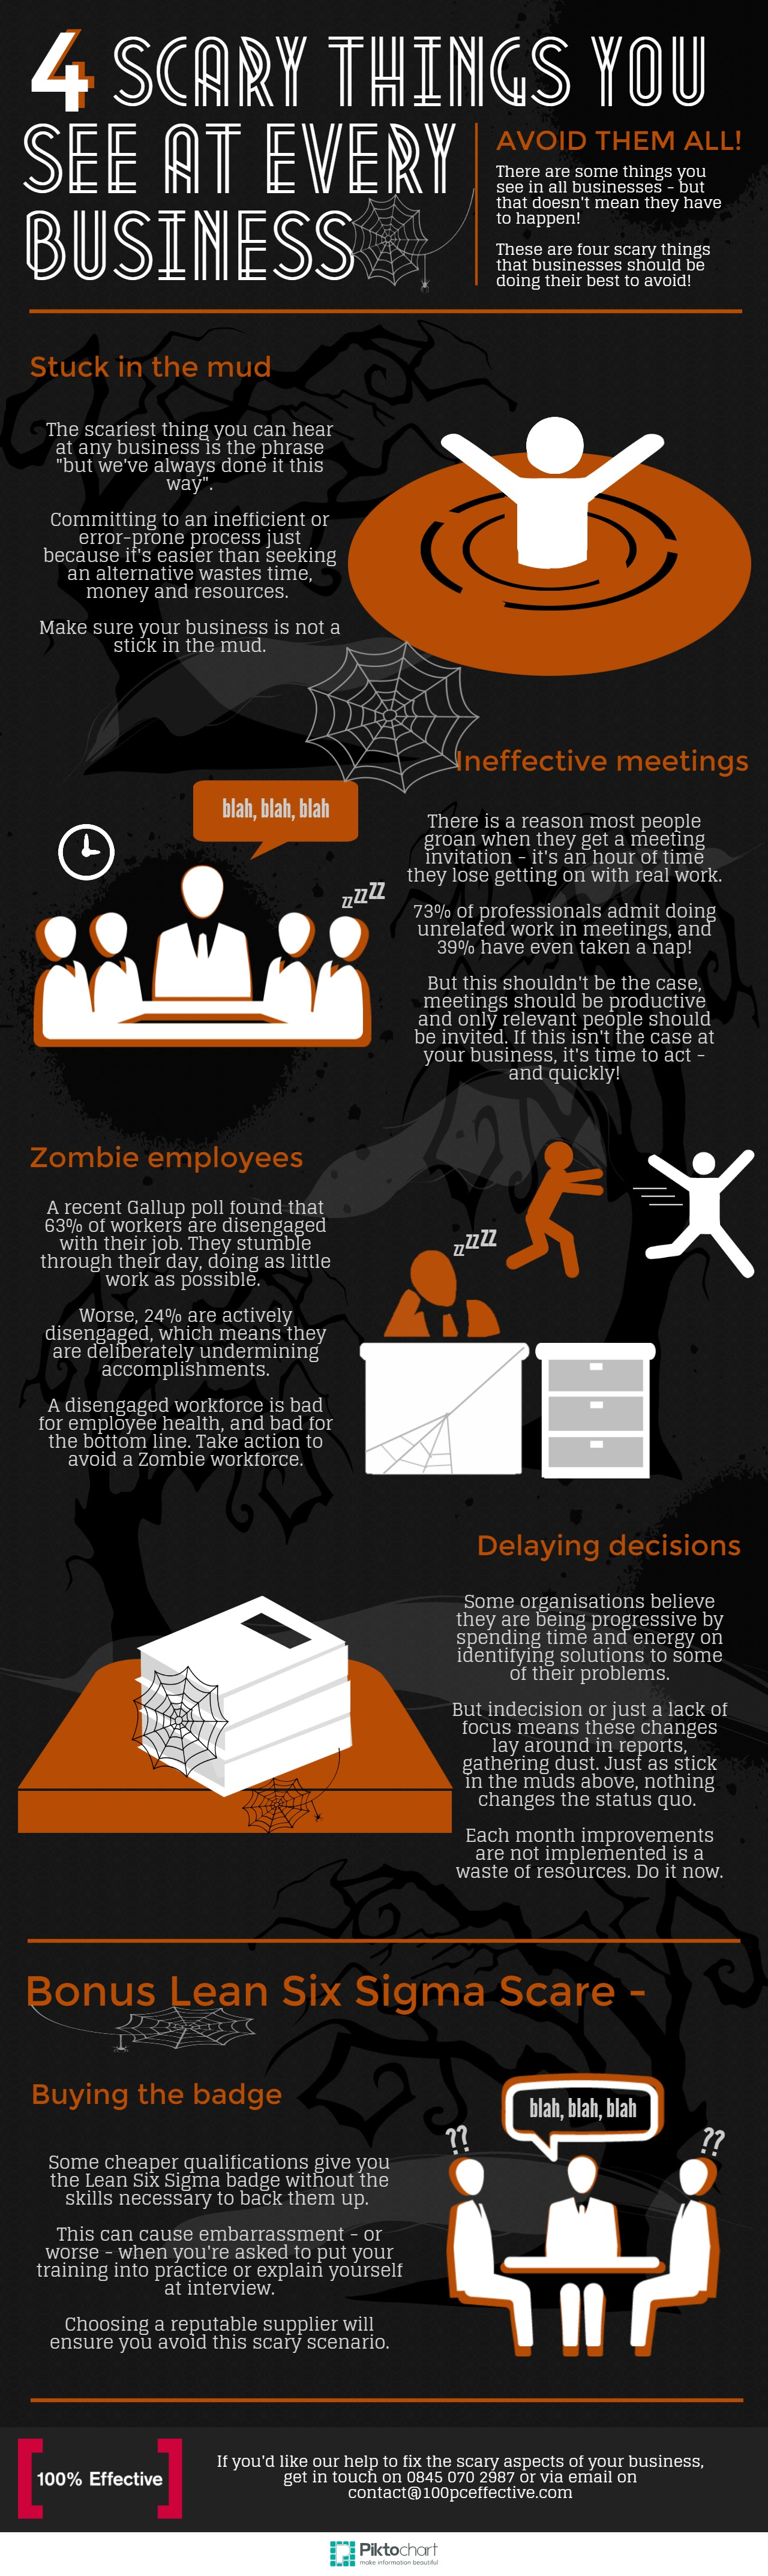 four scary things you see at every business